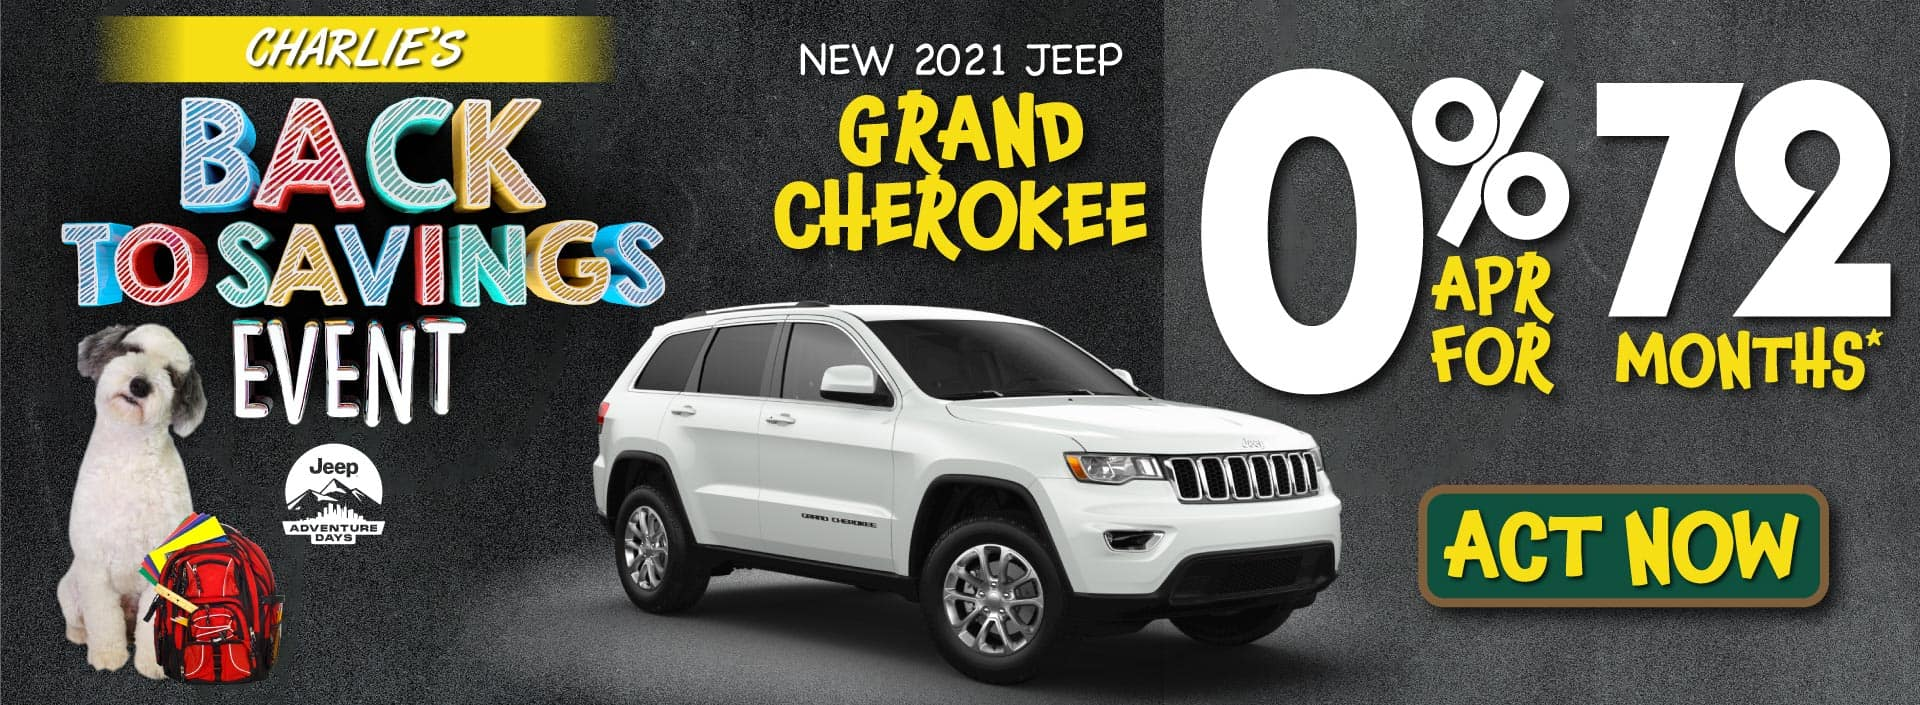 New 2021 Grand Cherokee - 0% APR for 72 months* - ACT NOW